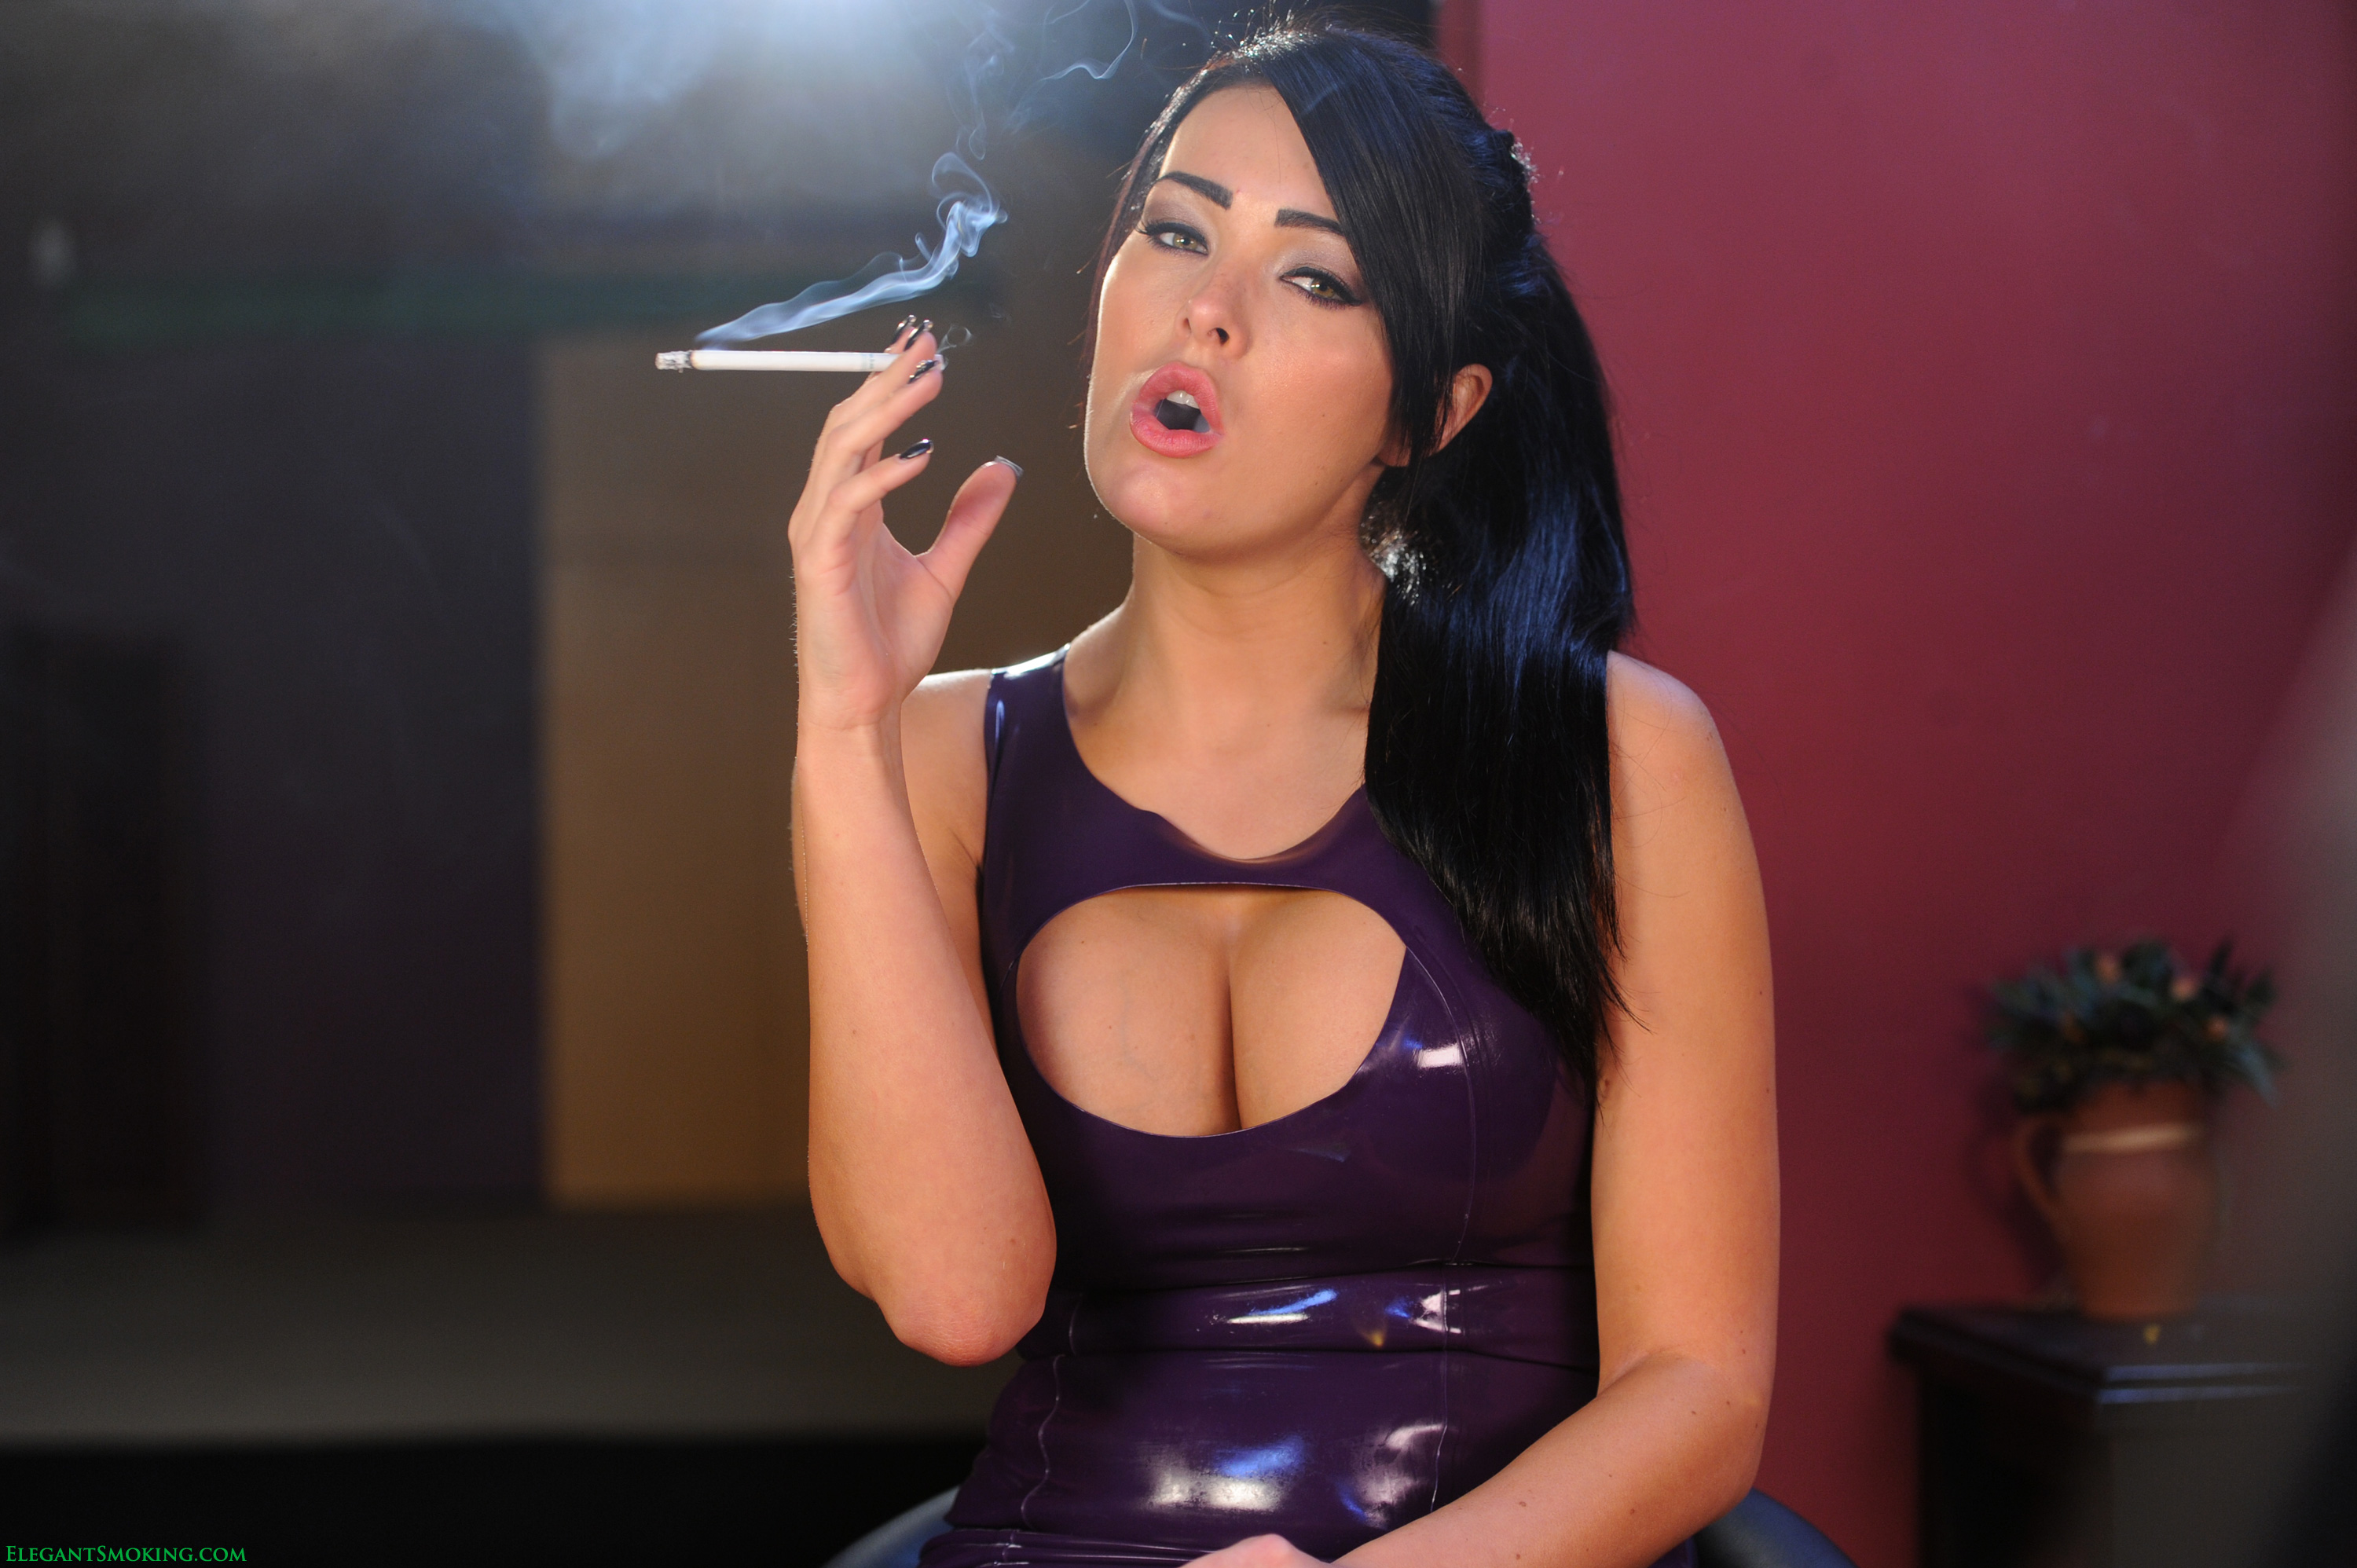 image Smoking hot sasha grey in action